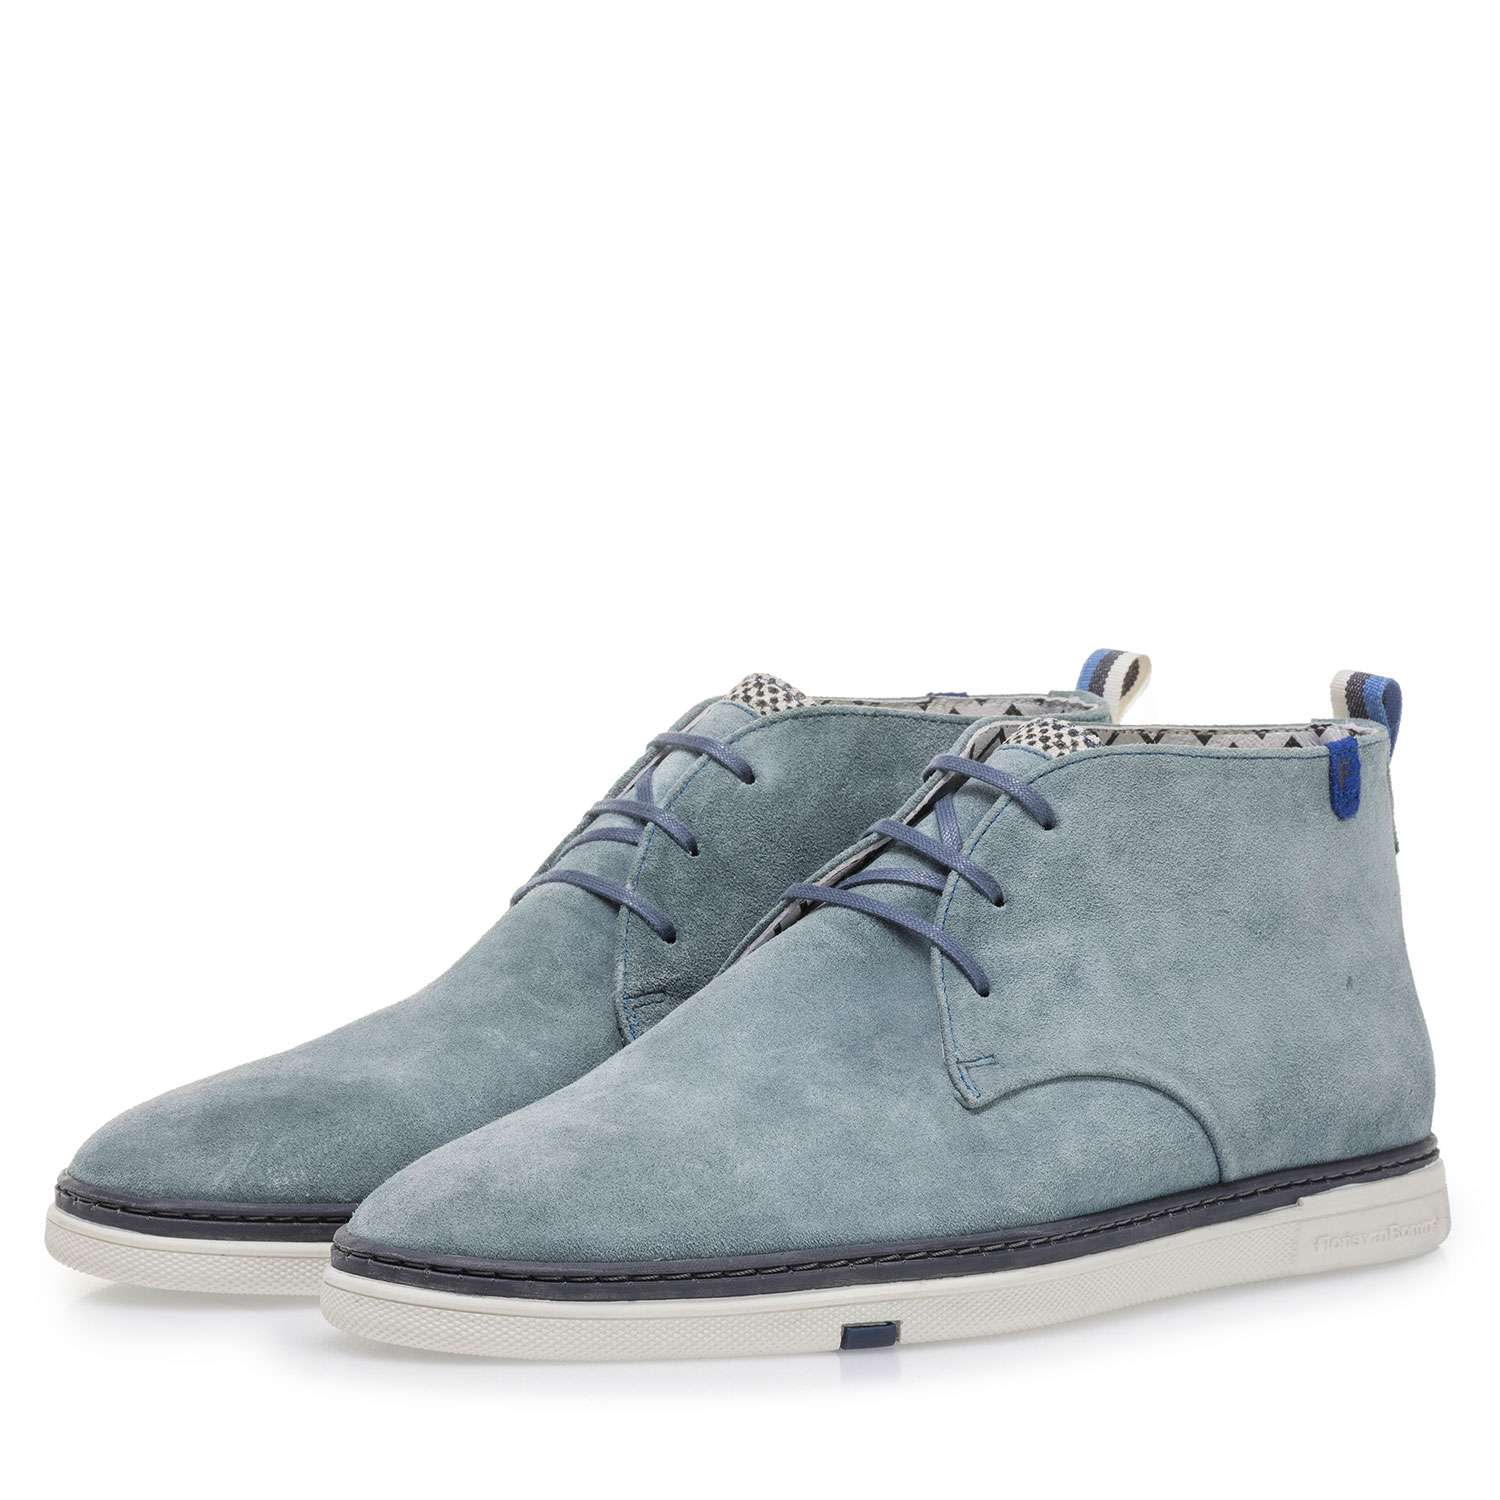 10502/07 - Light blue suede leather lace boot